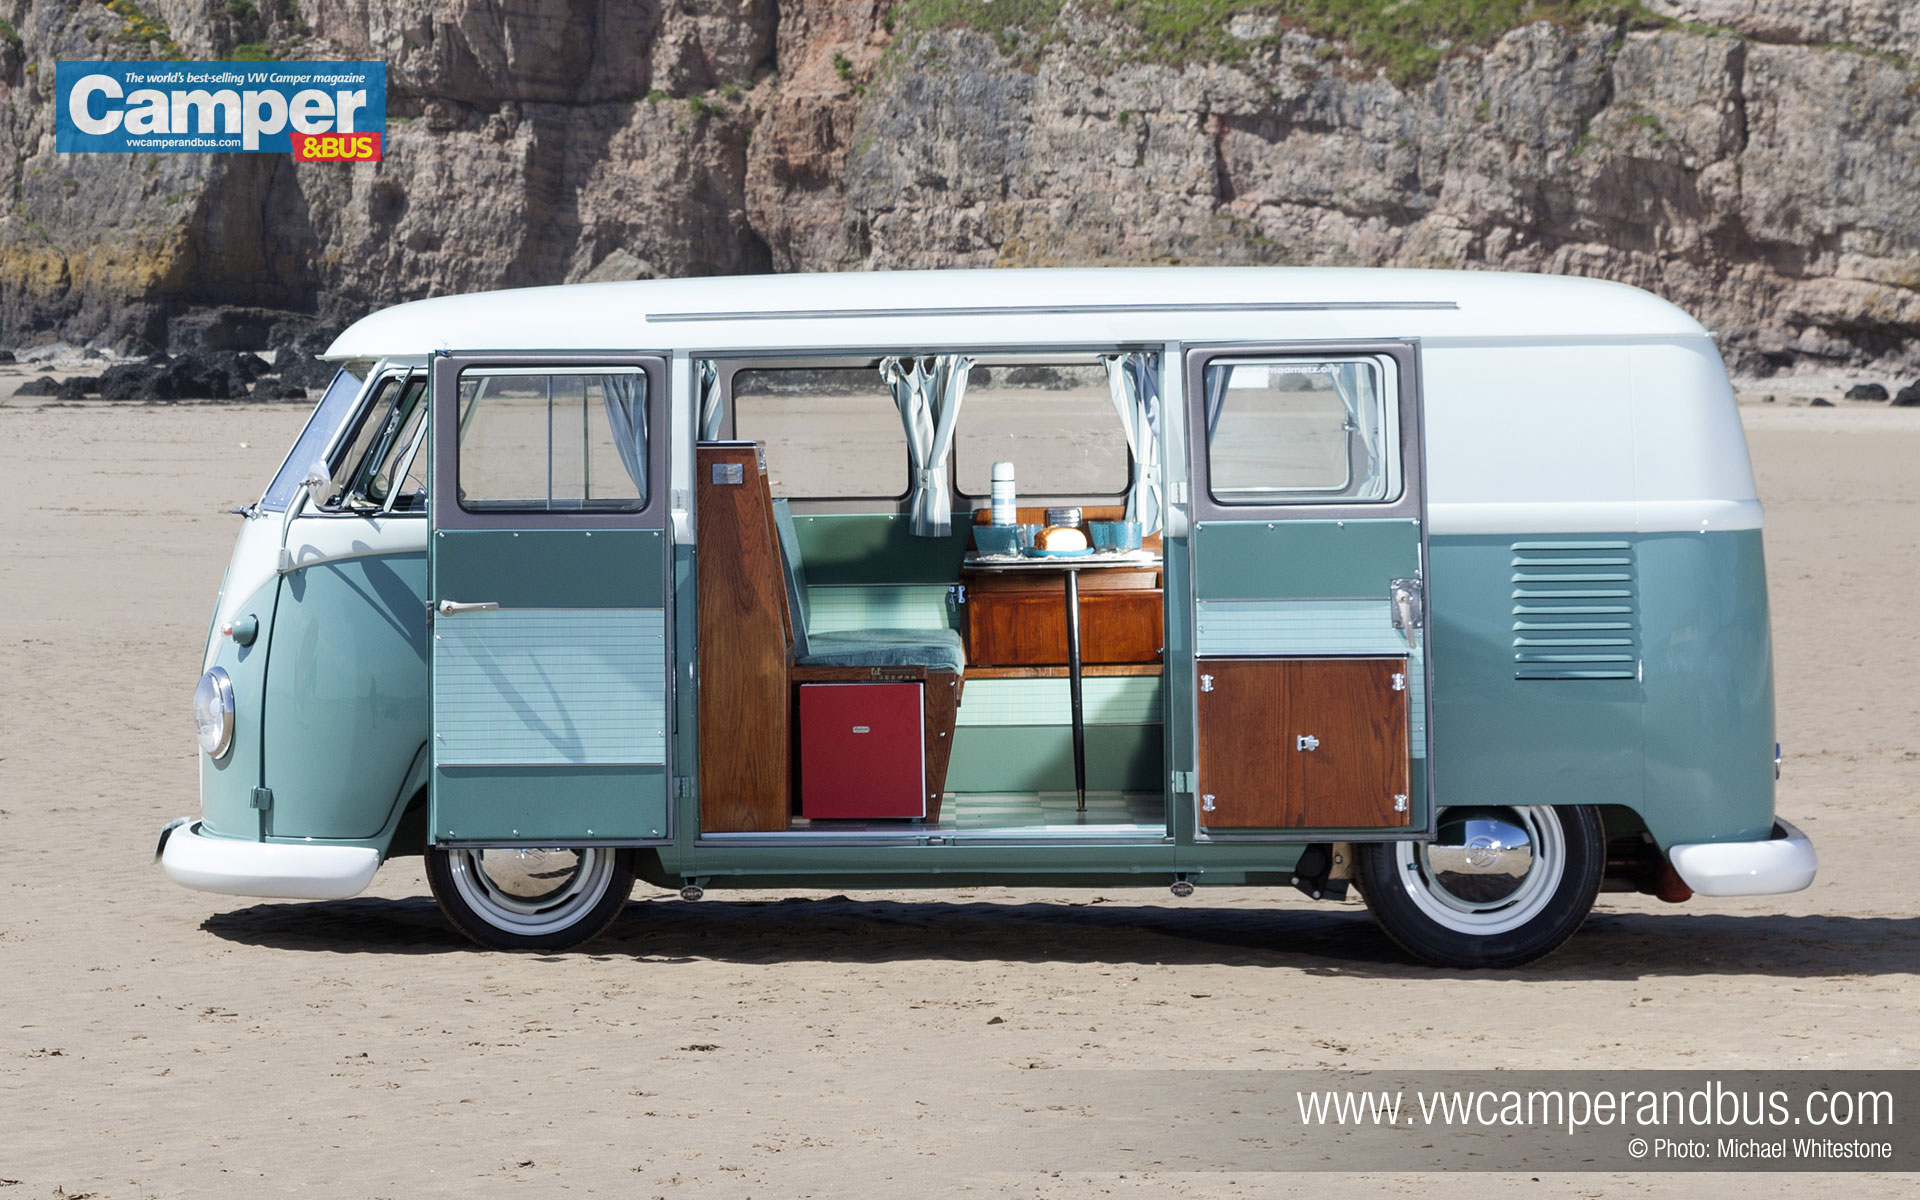 1962 Devon Campervan Desktop Wallpaper 03 Jpg HD Wallpapers Download Free Images Wallpaper [1000image.com]